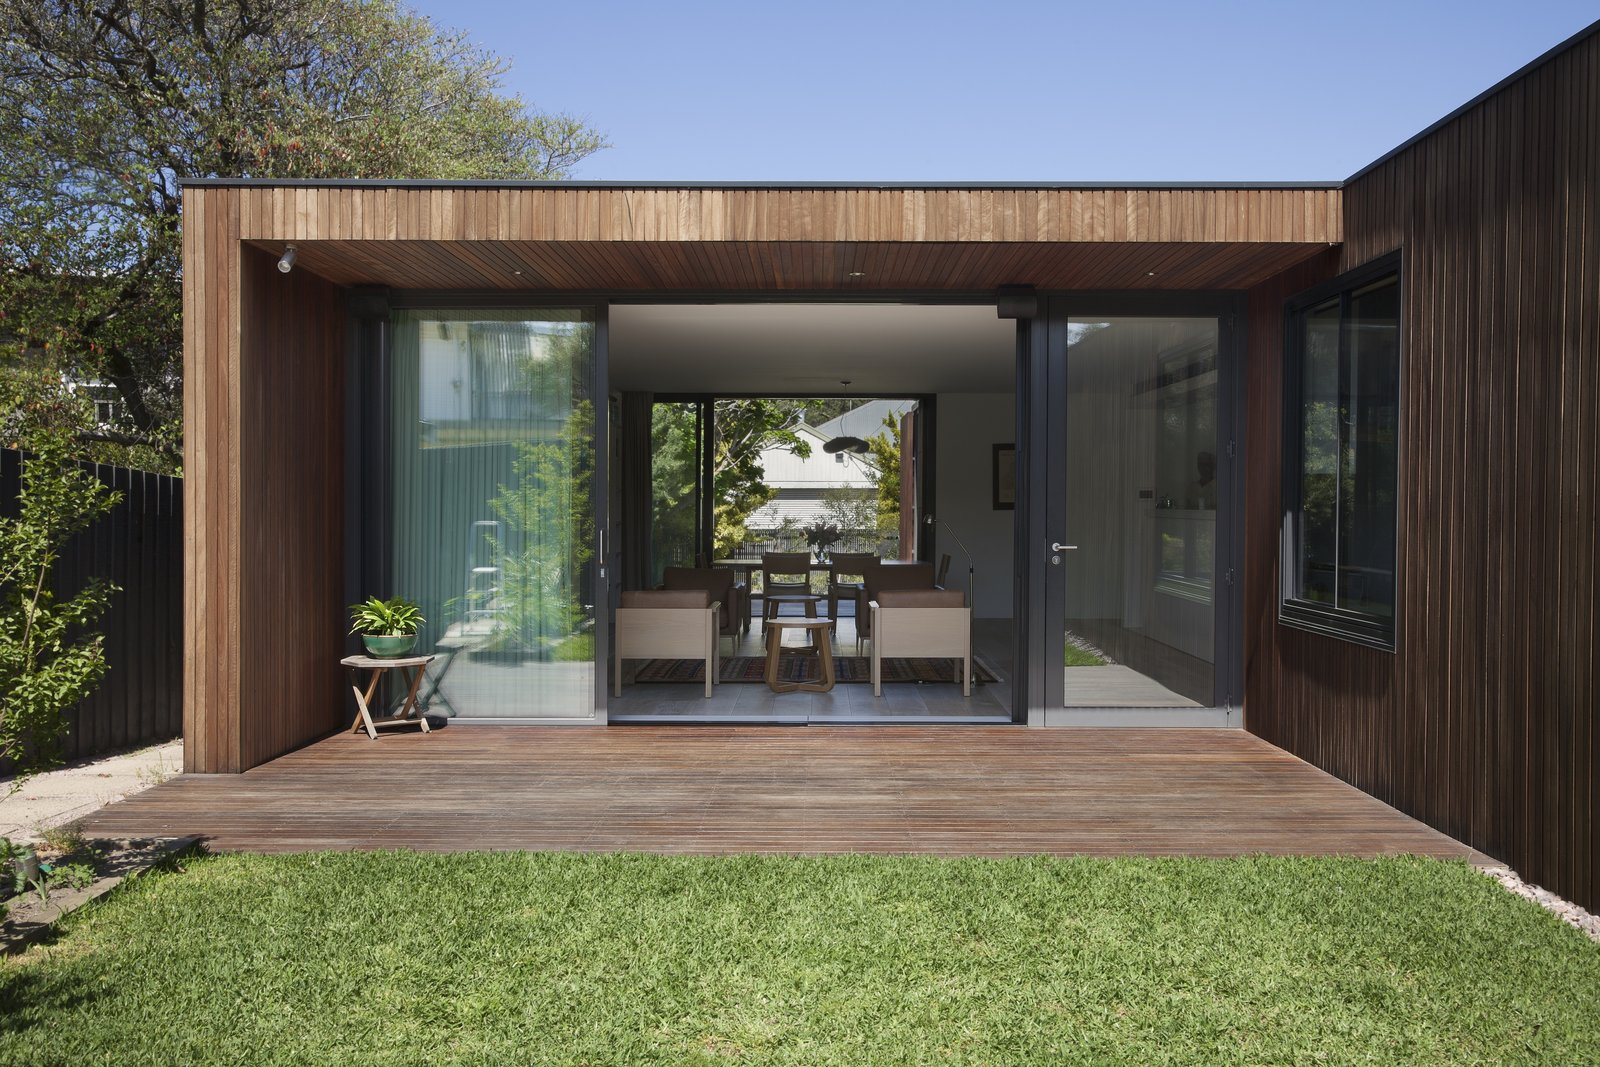 Outdoor, Small Patio, Porch, Deck, Wood Patio, Porch, Deck, Grass, and Back Yard  Photo 3 of 6 in A Timber-Clad Home in Australia Is a Striking Place to Grow Old In